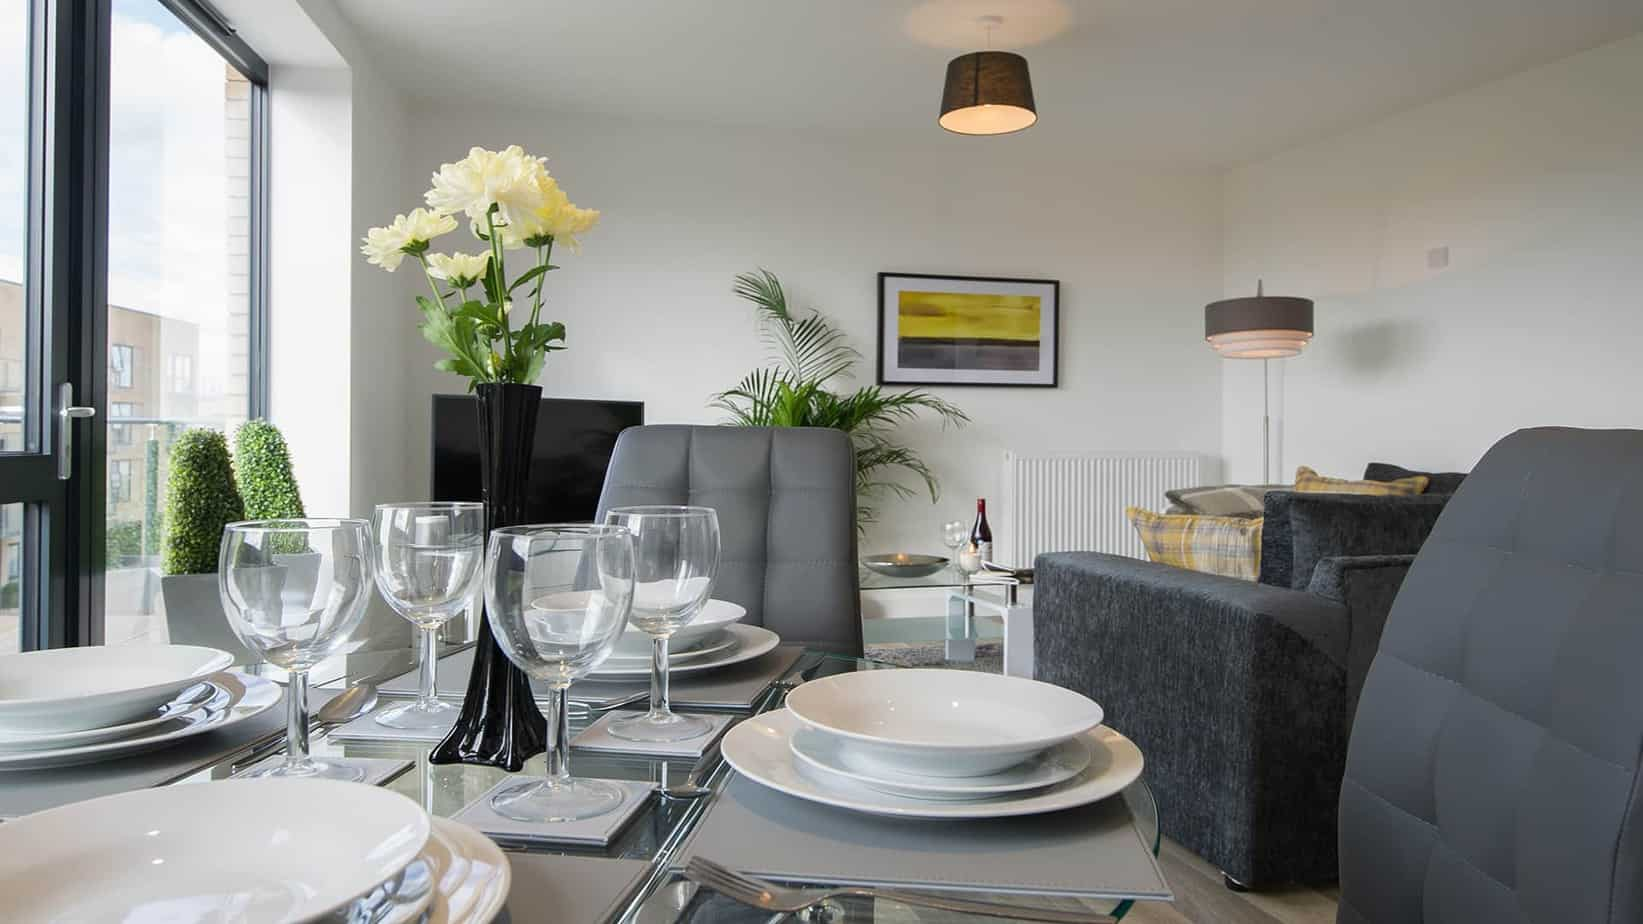 Tailored Stays serviced apartment cpompany cambridge offer large living and dining space